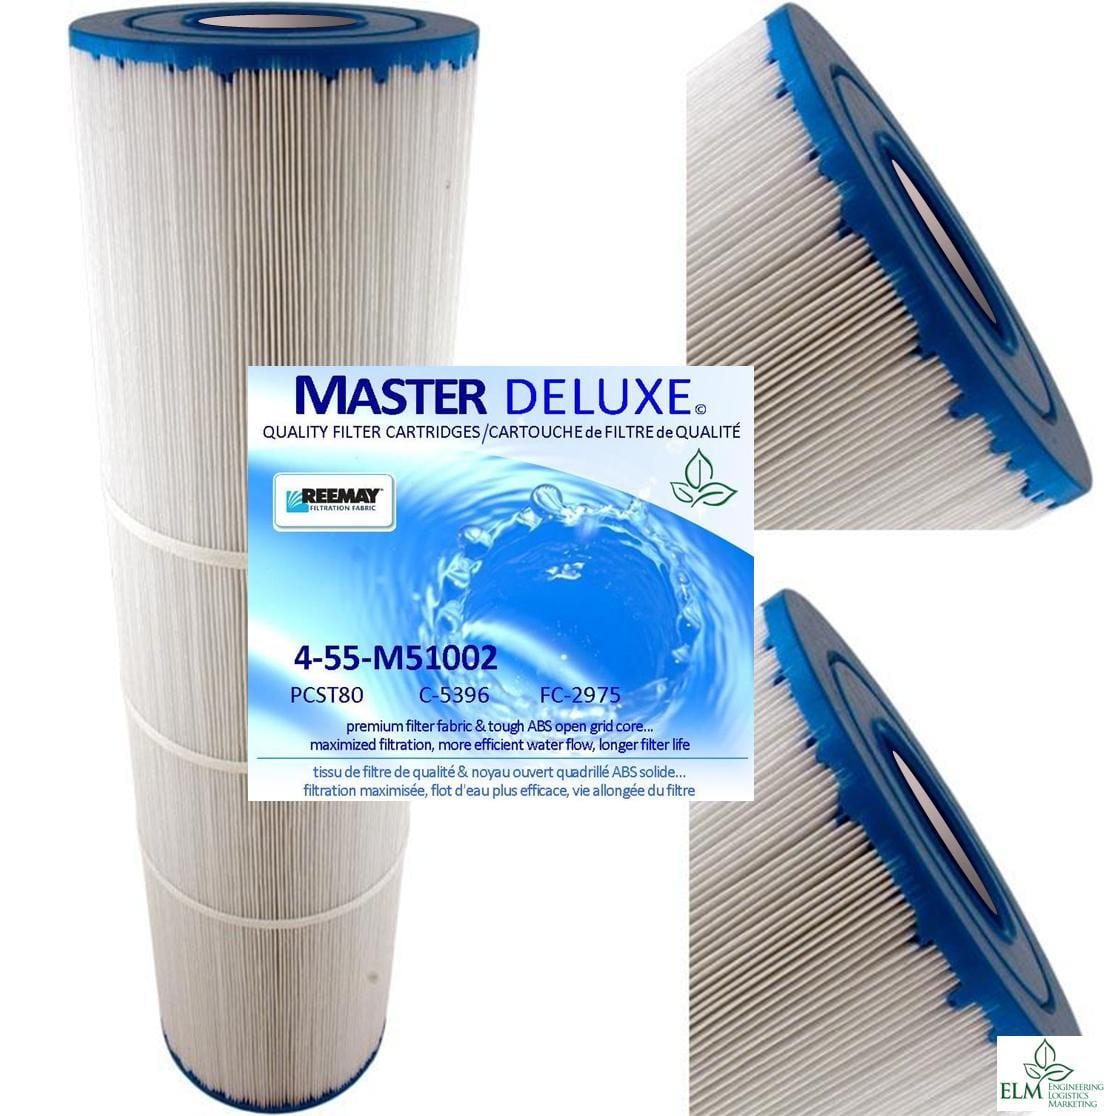 4-Pack of M51002 Spa Filter cartridges replace C-5396 FC-2975 PCST80